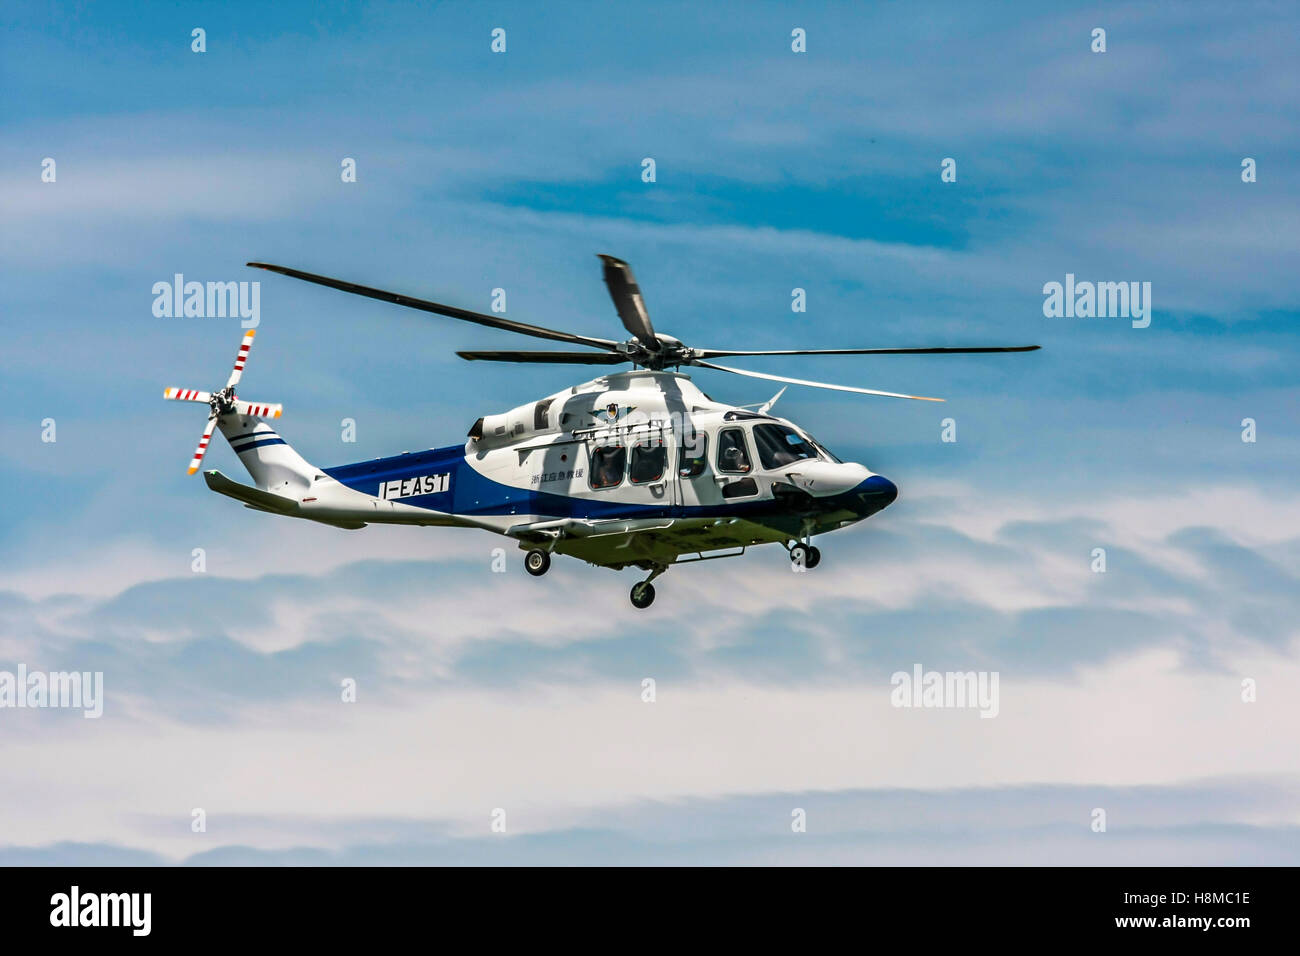 Privately owned agustawestland AW139 helicopter Photographed in Italy - Stock Image